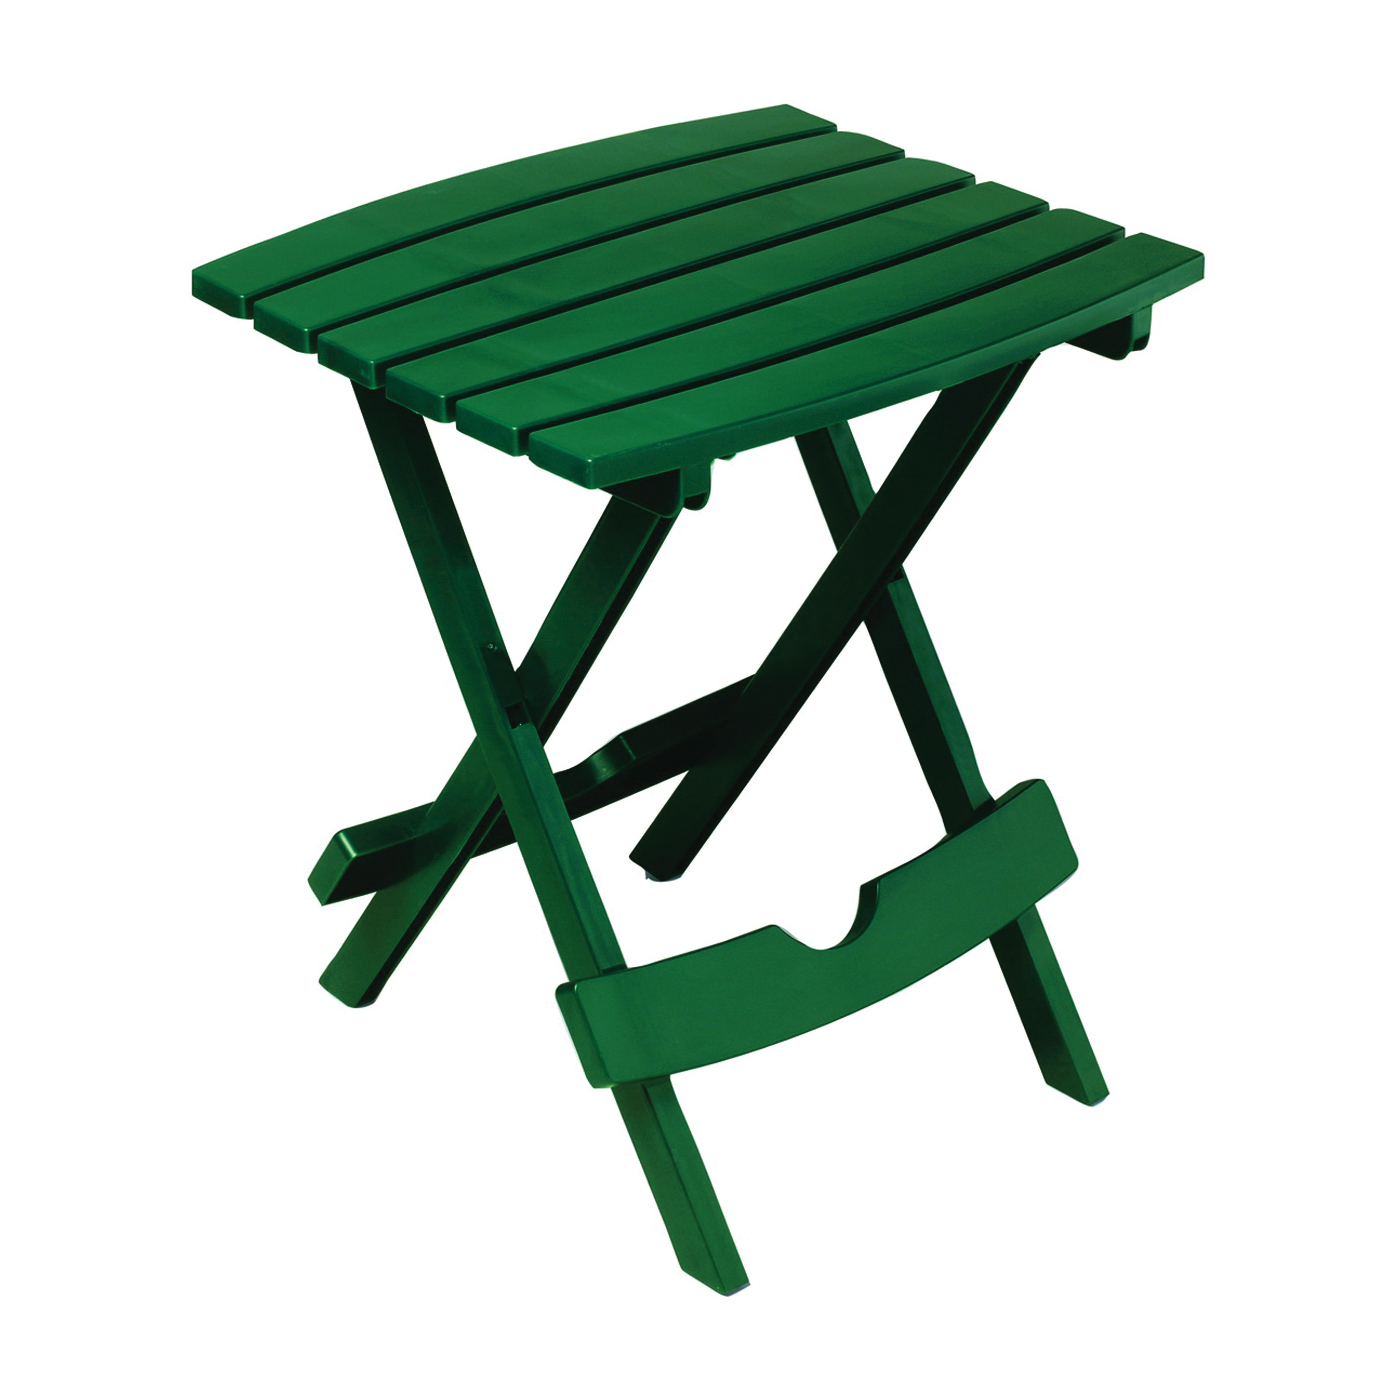 Picture of Adams Quik-Fold 8510-16-3734 Side Table, 15-1/4 in W, 17-3/8 in D, 19-3/4 in H, Resin Frame, Rectangular Table